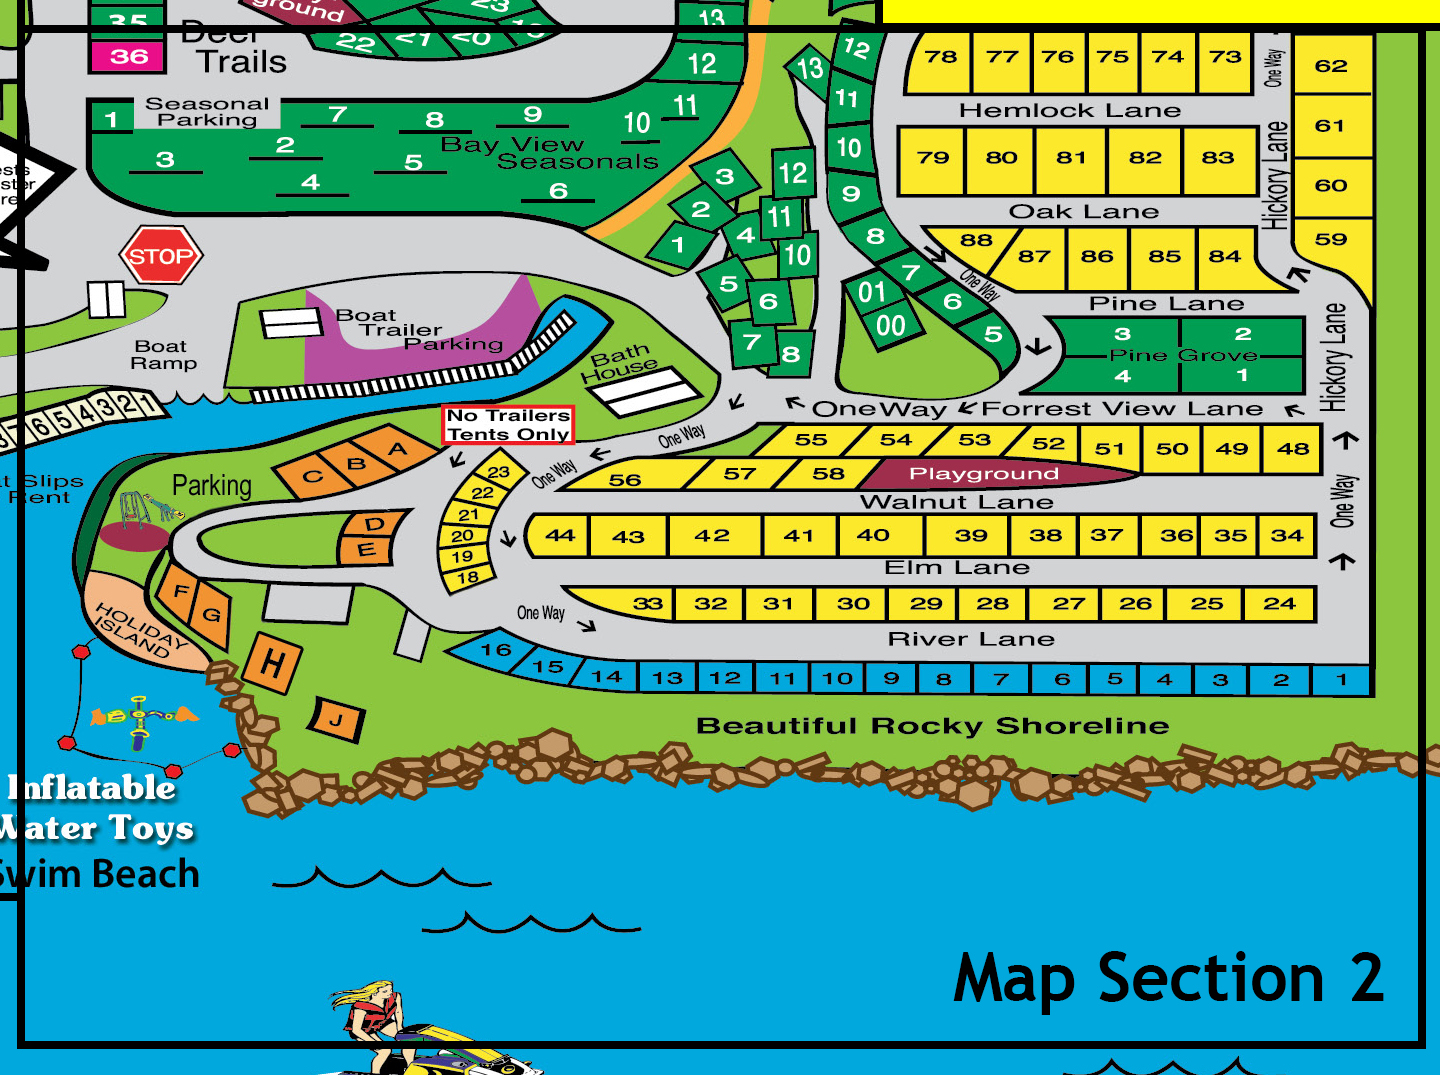 Resort Map Section 2